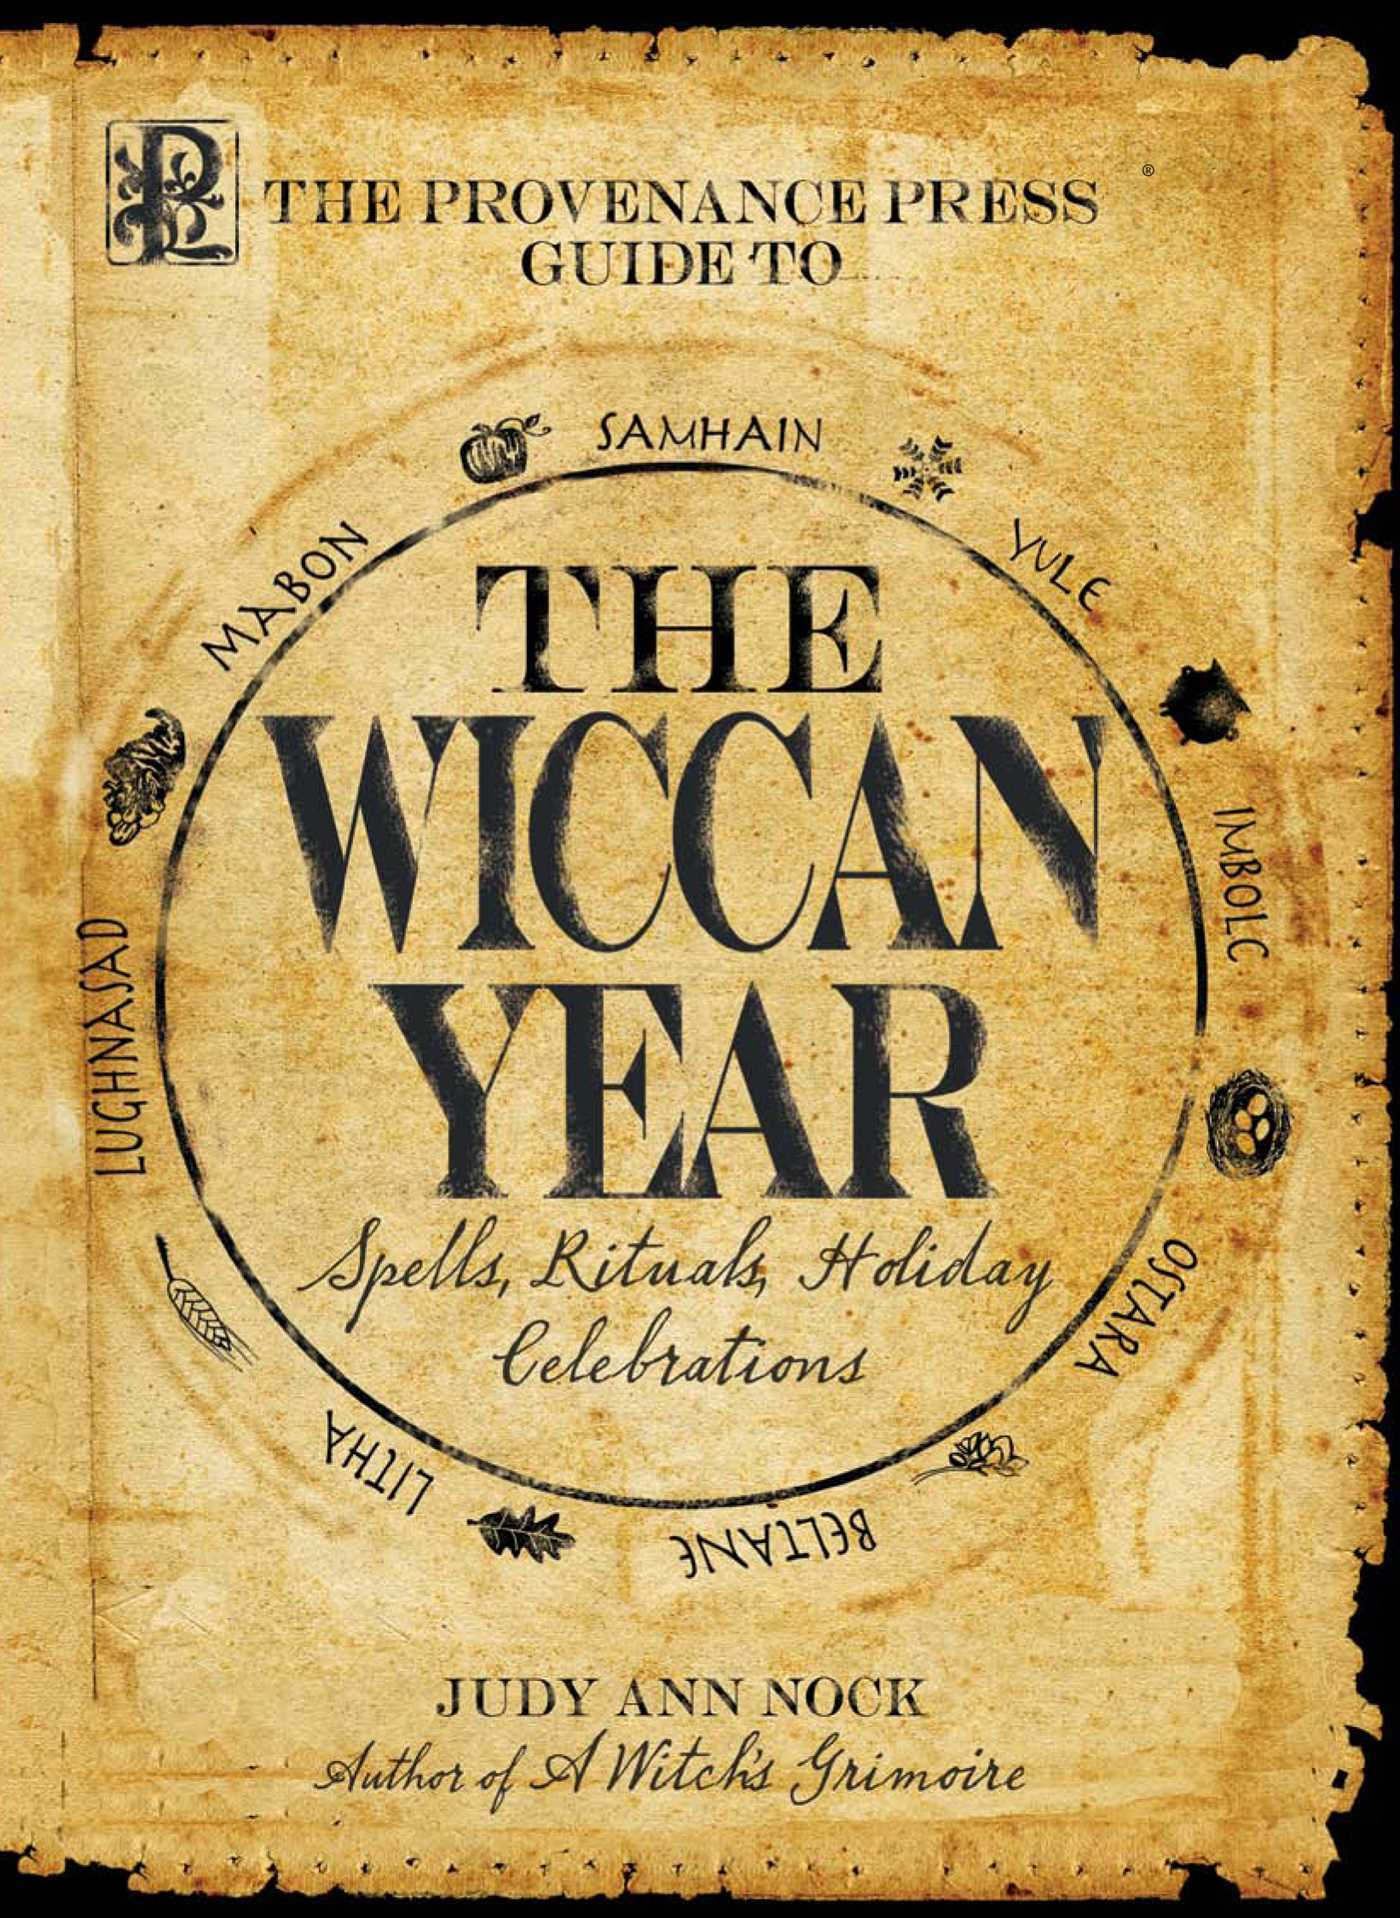 The provenance press guide to the wiccan year 9781598691252 hr